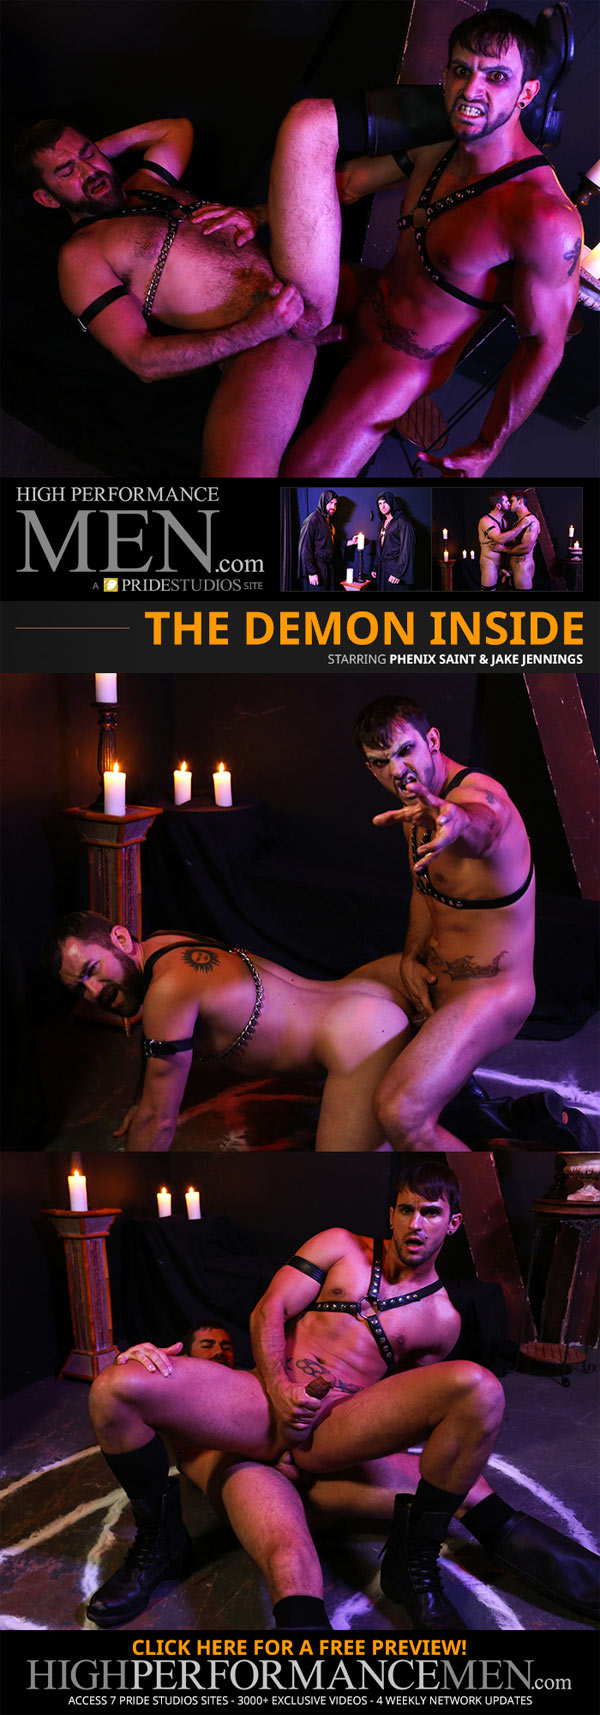 The Demon Inside (Phenix Saint & Jake Jennings) (Flip-Flop) at High Performance Men